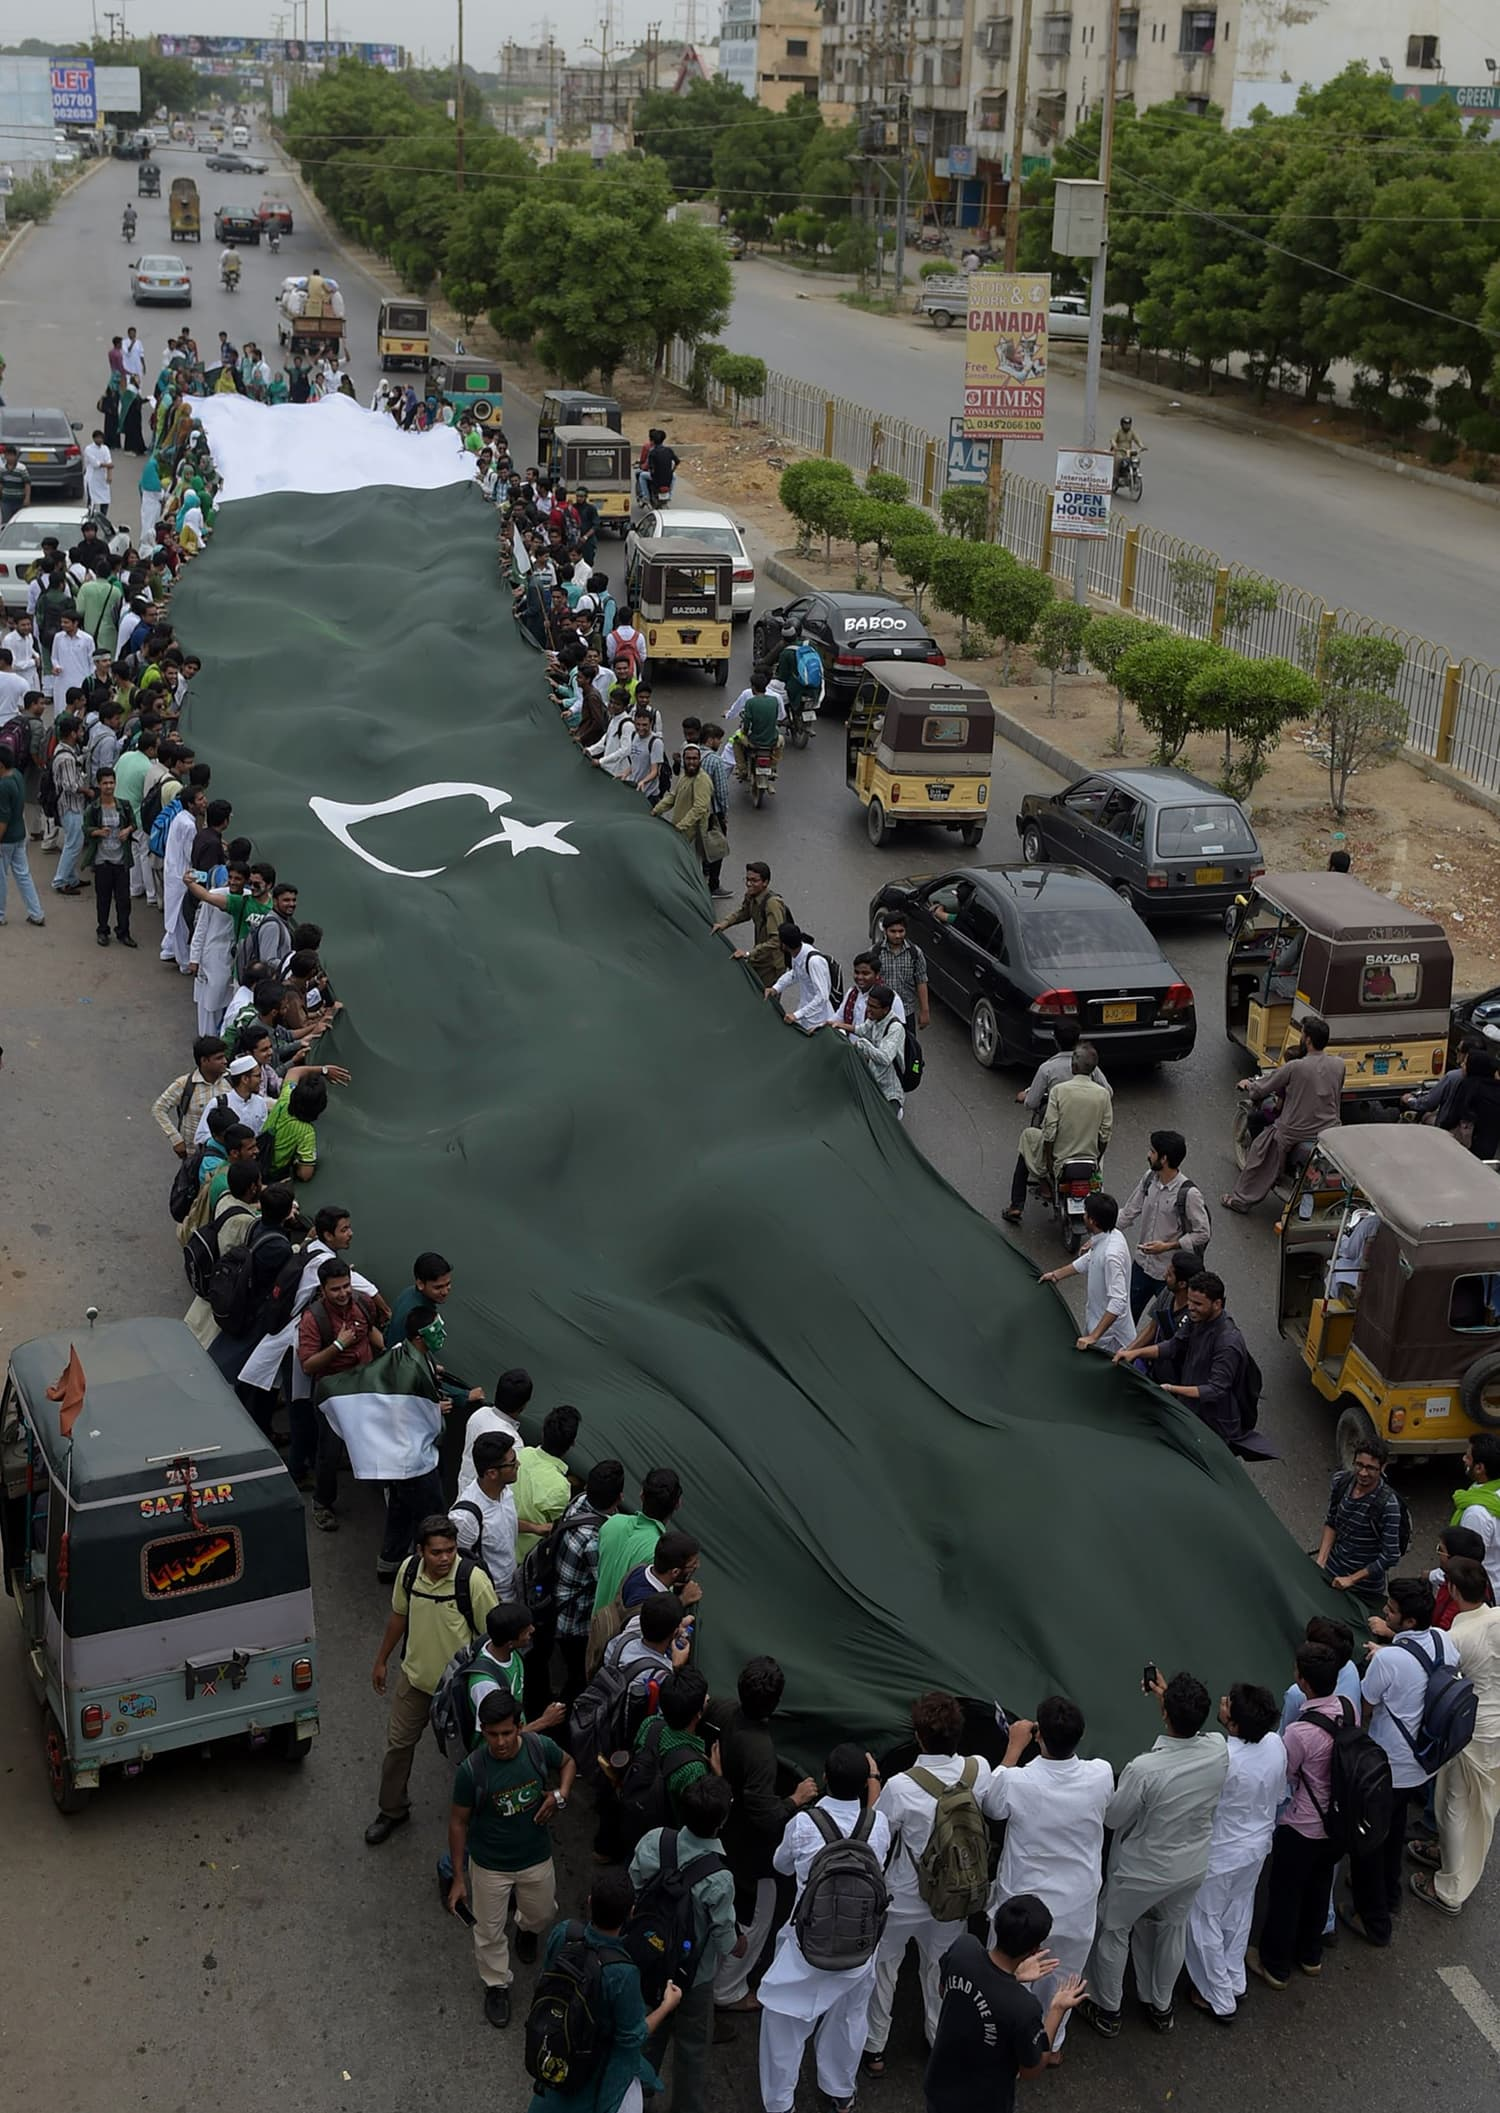 Students carry a national flag as they march on a street ahead of the country's forthcoming Independence Day celebrations in Karachi. — AFP